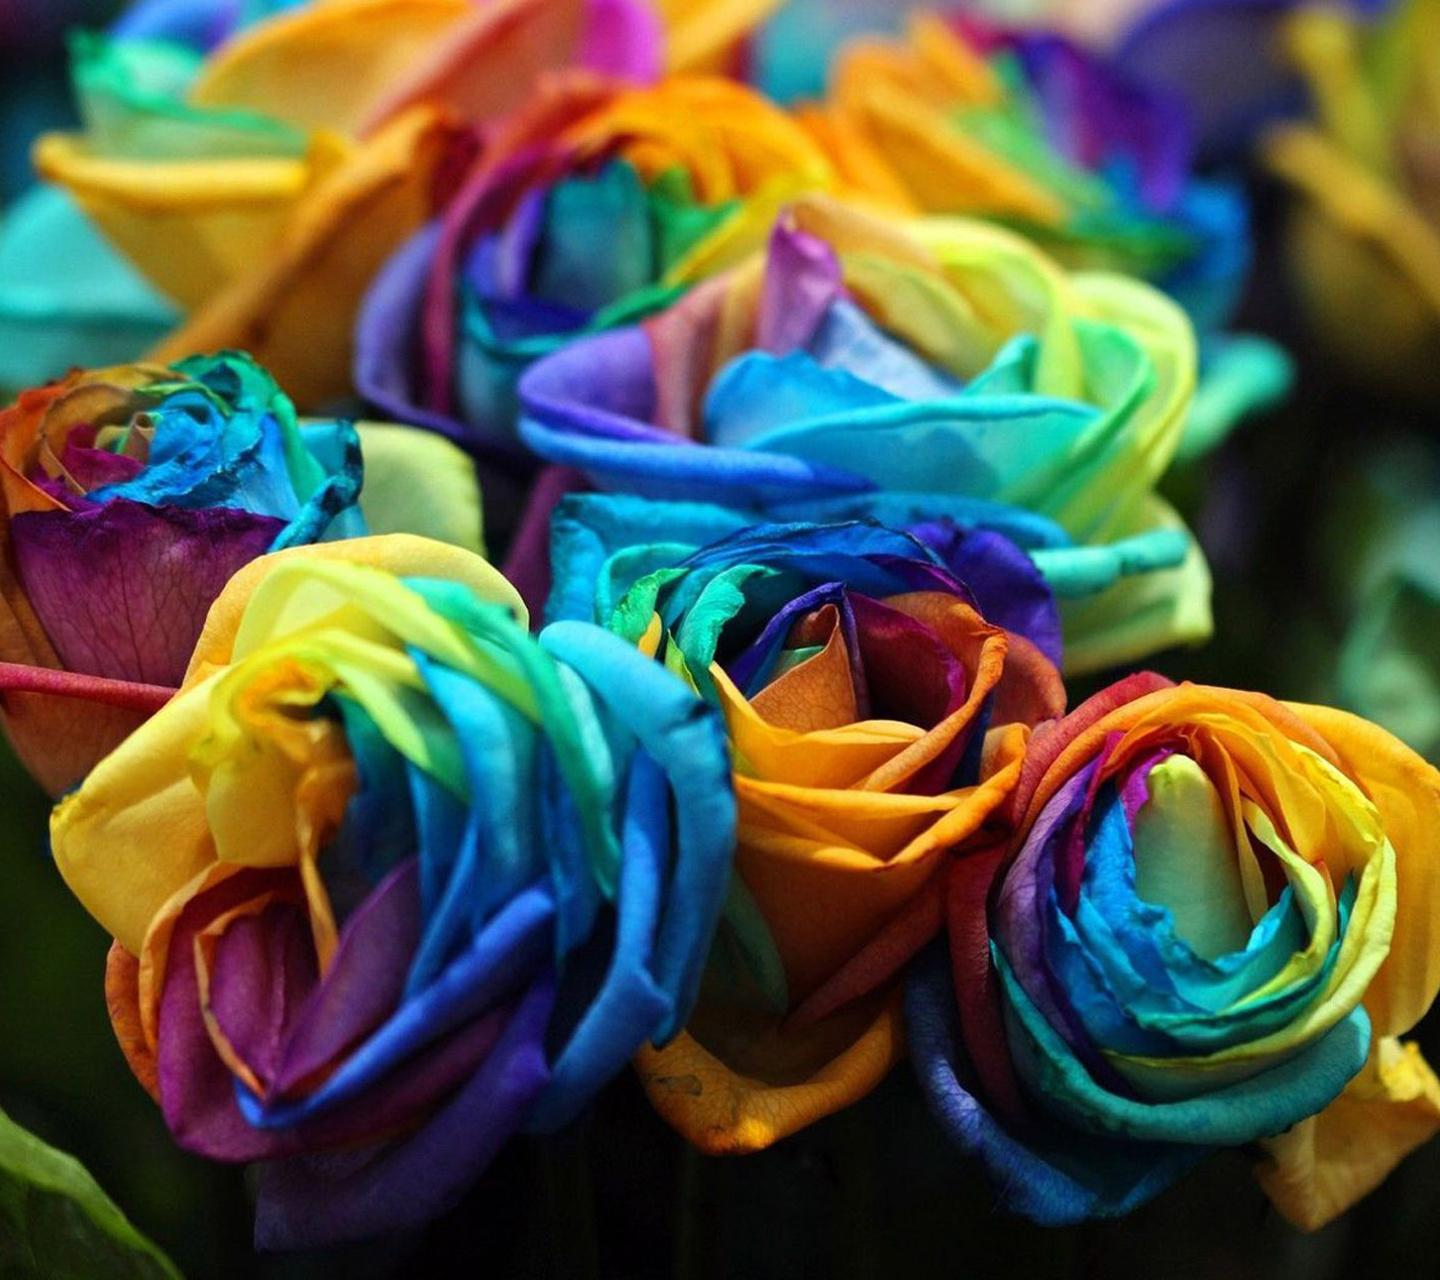 Colourful Rose Hd Wallpaper